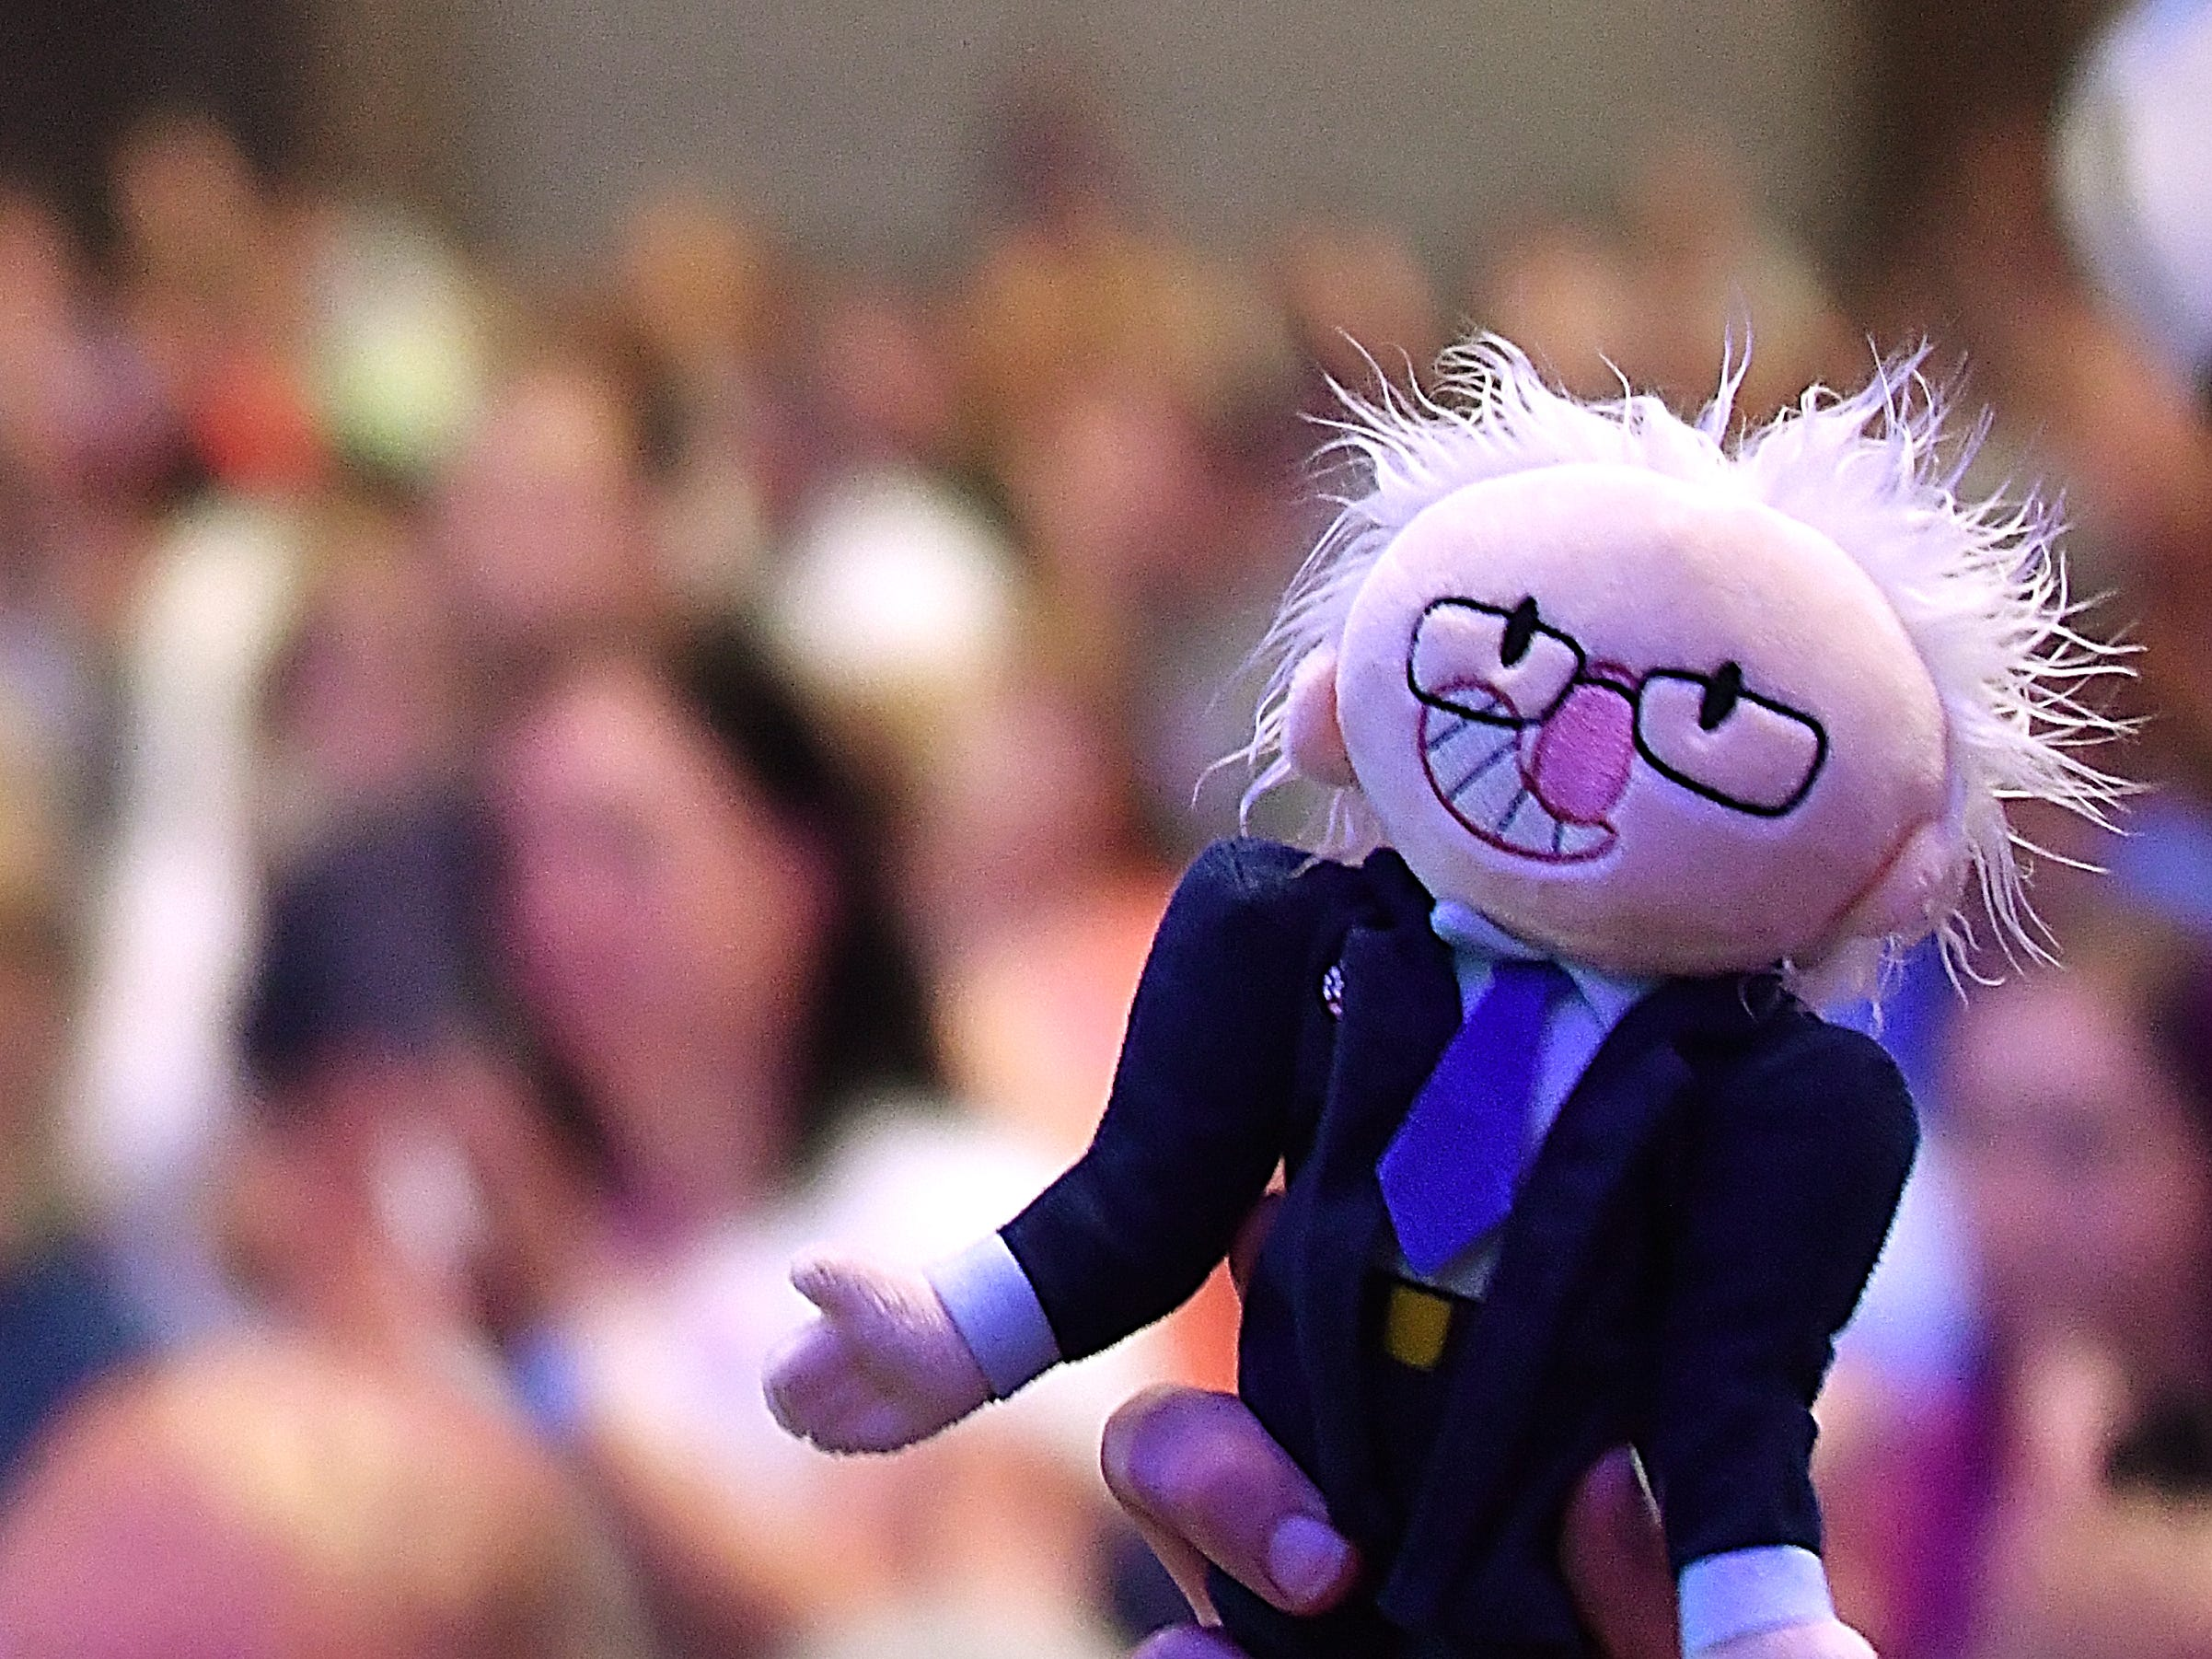 A Bernie Sanders stuffed doll is lifted into the air by a member of the crowd.